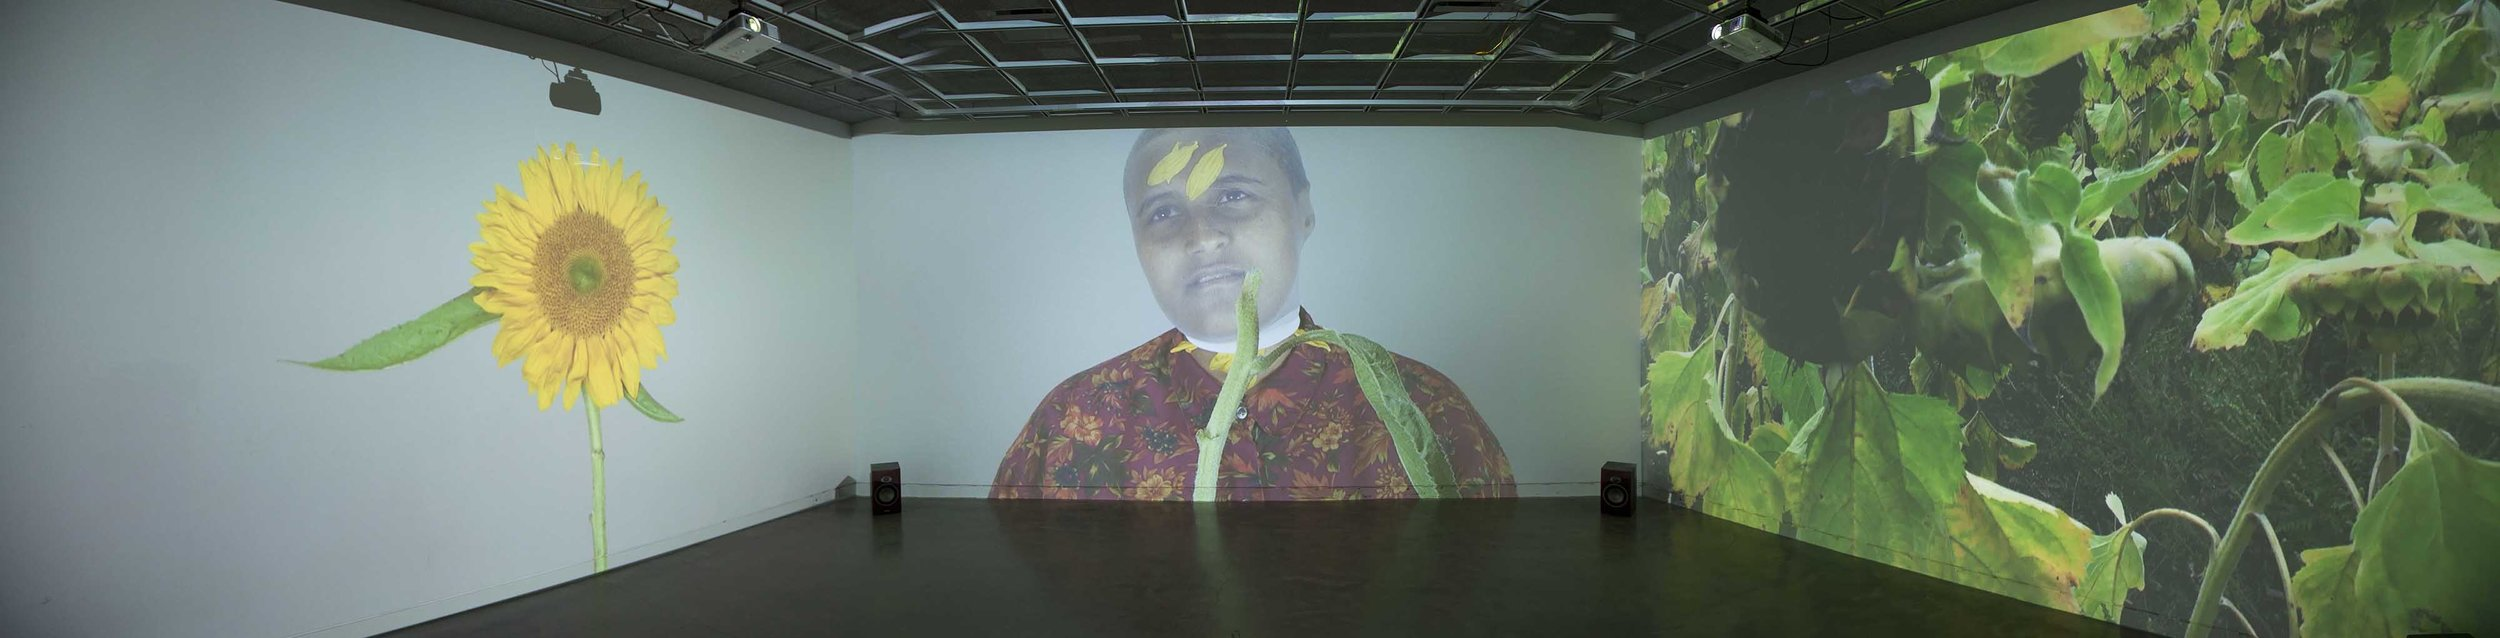 Yasmina Chavez, Fountainhead Loop, 3 channel video, installation image.The artist's MFA thesis project Sensing Time, opens at the Robert C. Turner Gallery in Alfred,New York this month.